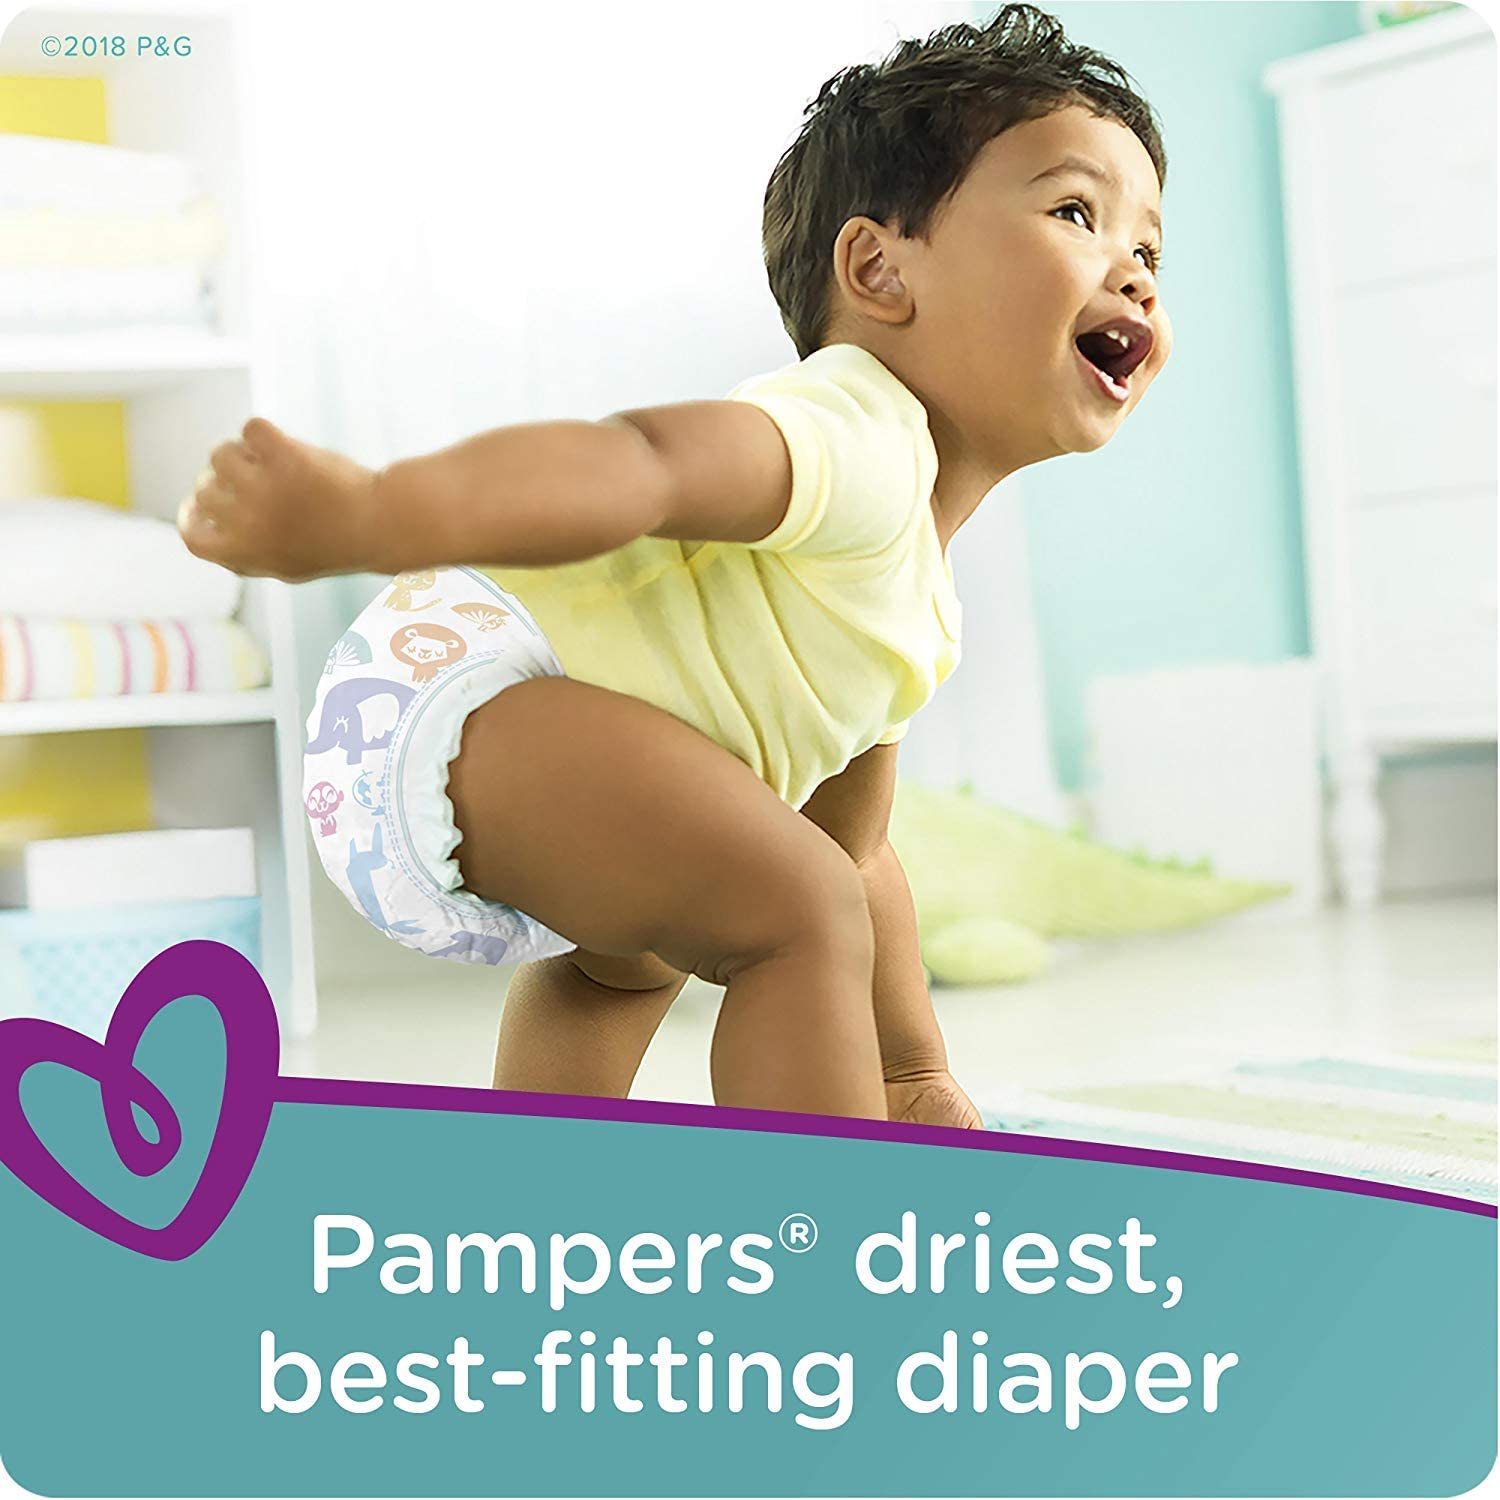 Pampers Cruisers Disposable Baby Diapers and Water Baby Wipes Sensitive Pop-Top Packs 160 Count and Baby Wipes 336 Count Diapers Size 4